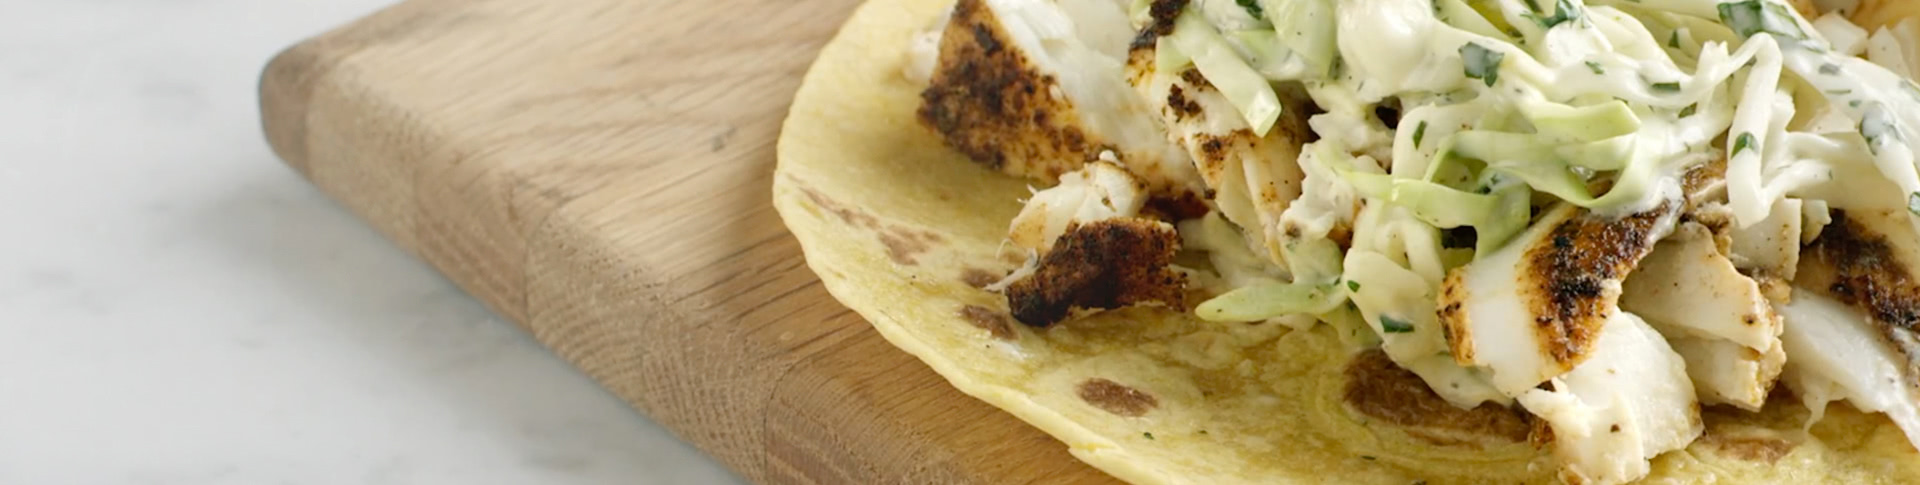 Grilled Halibut Tacos with Cabbage Slaw Recipe